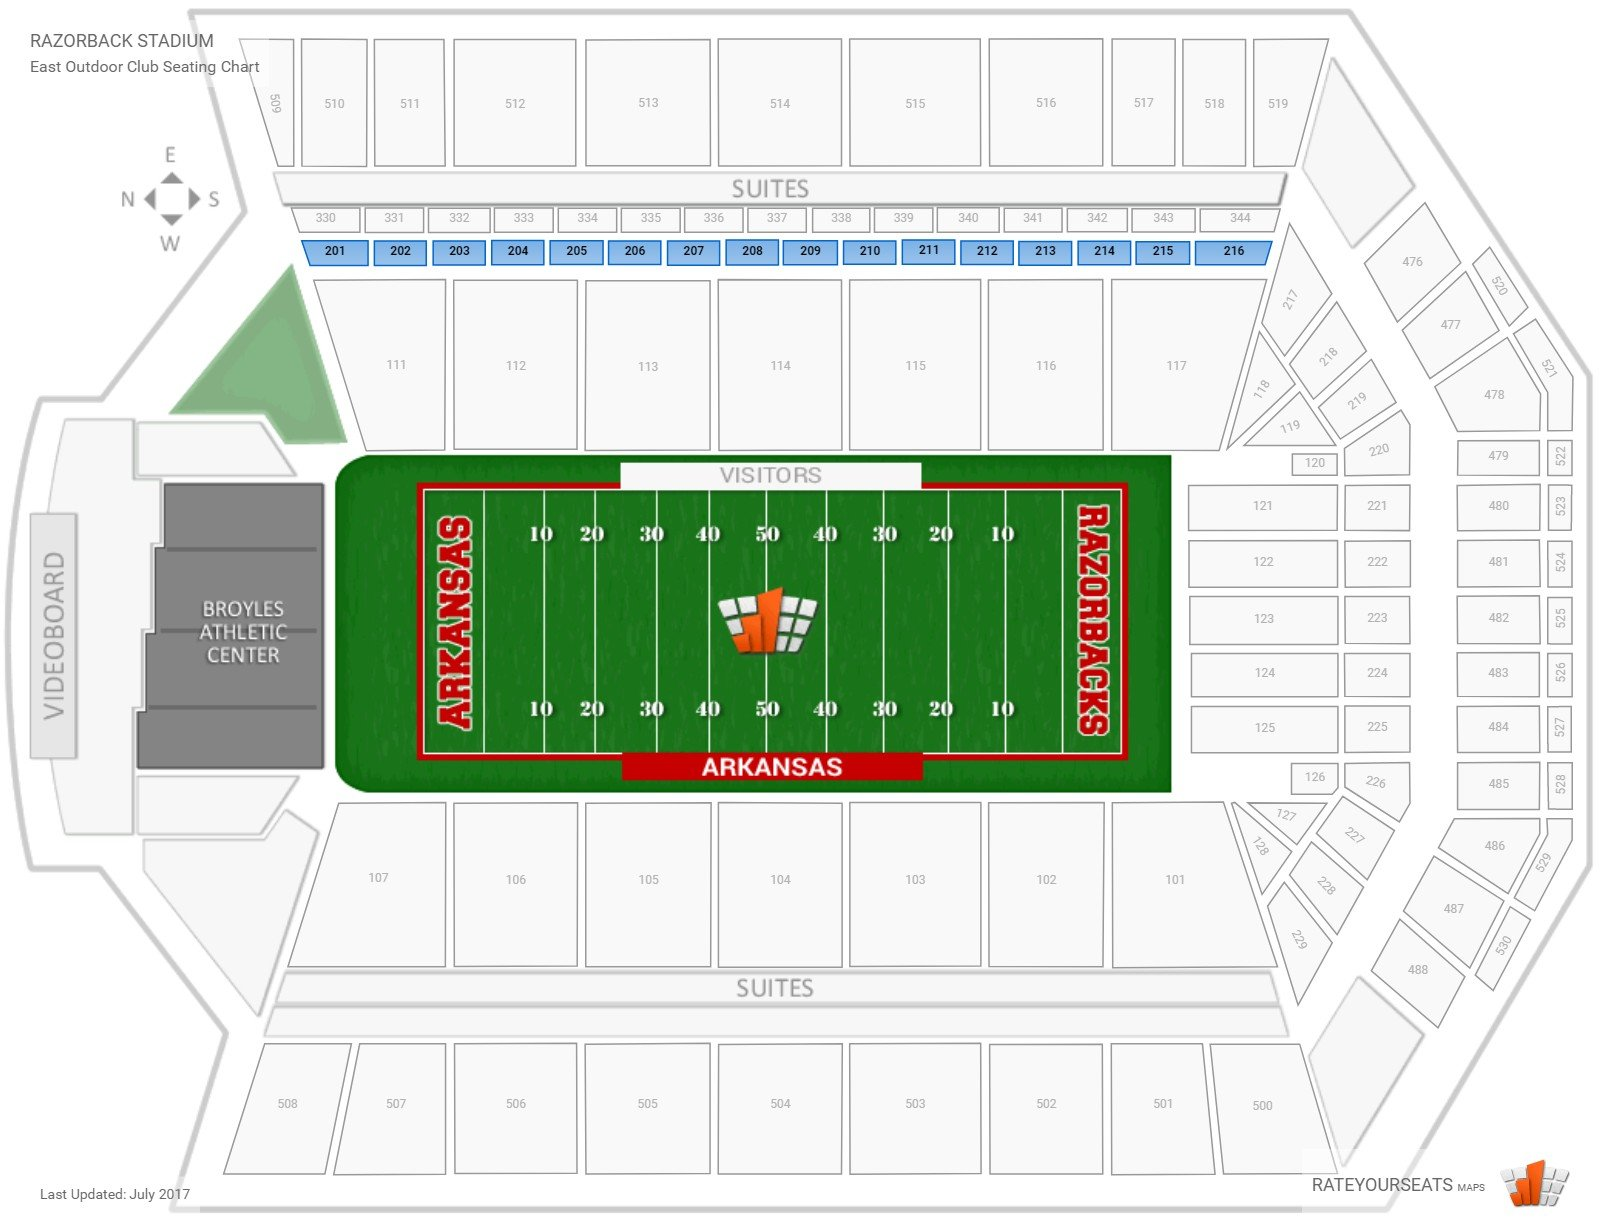 Razorback Stadium East Outdoor Club seating chart